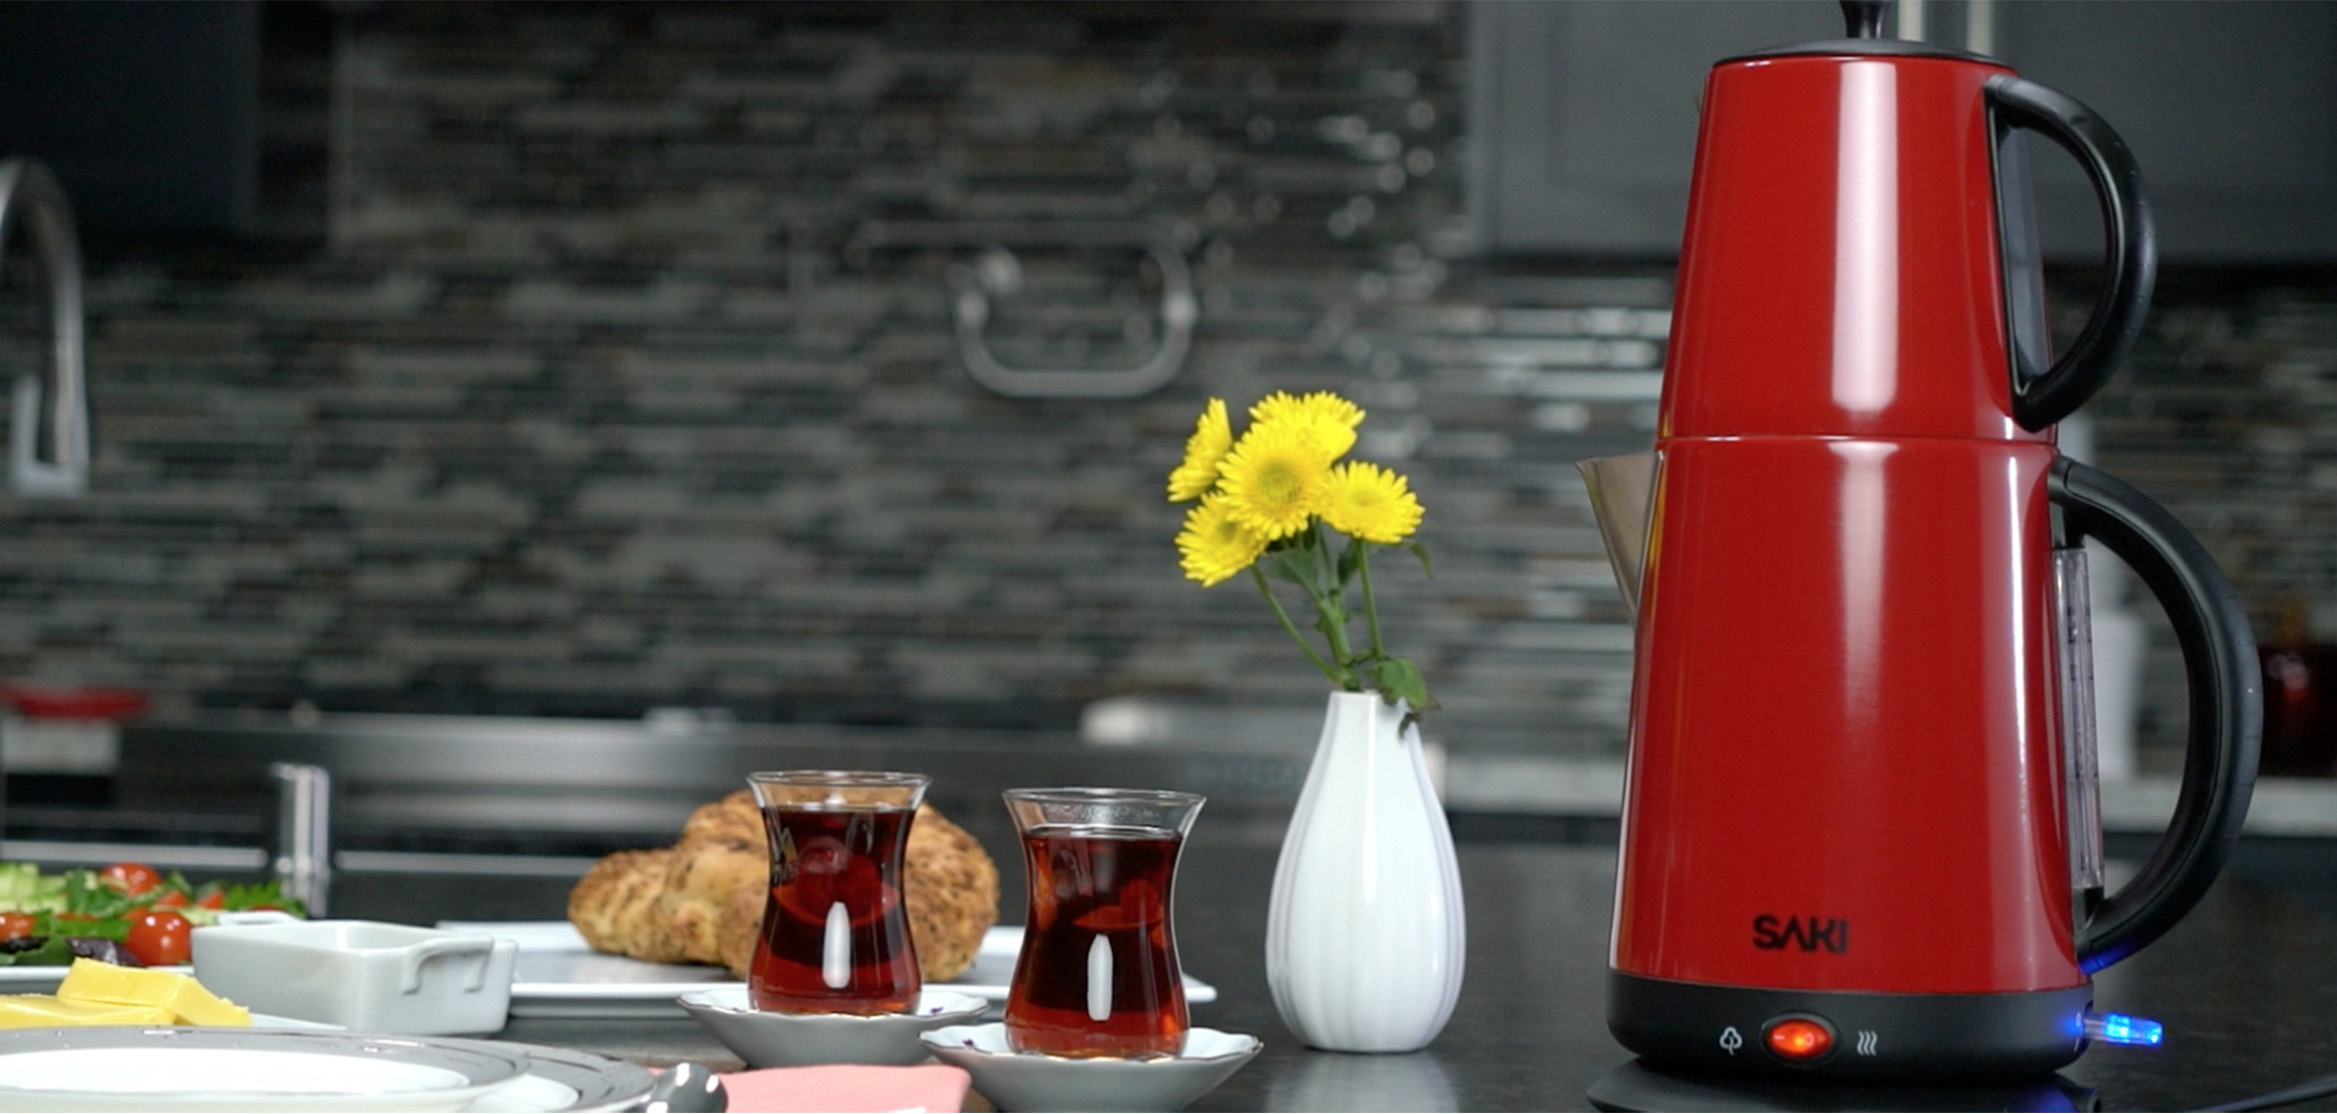 How to choose the right tea maker?